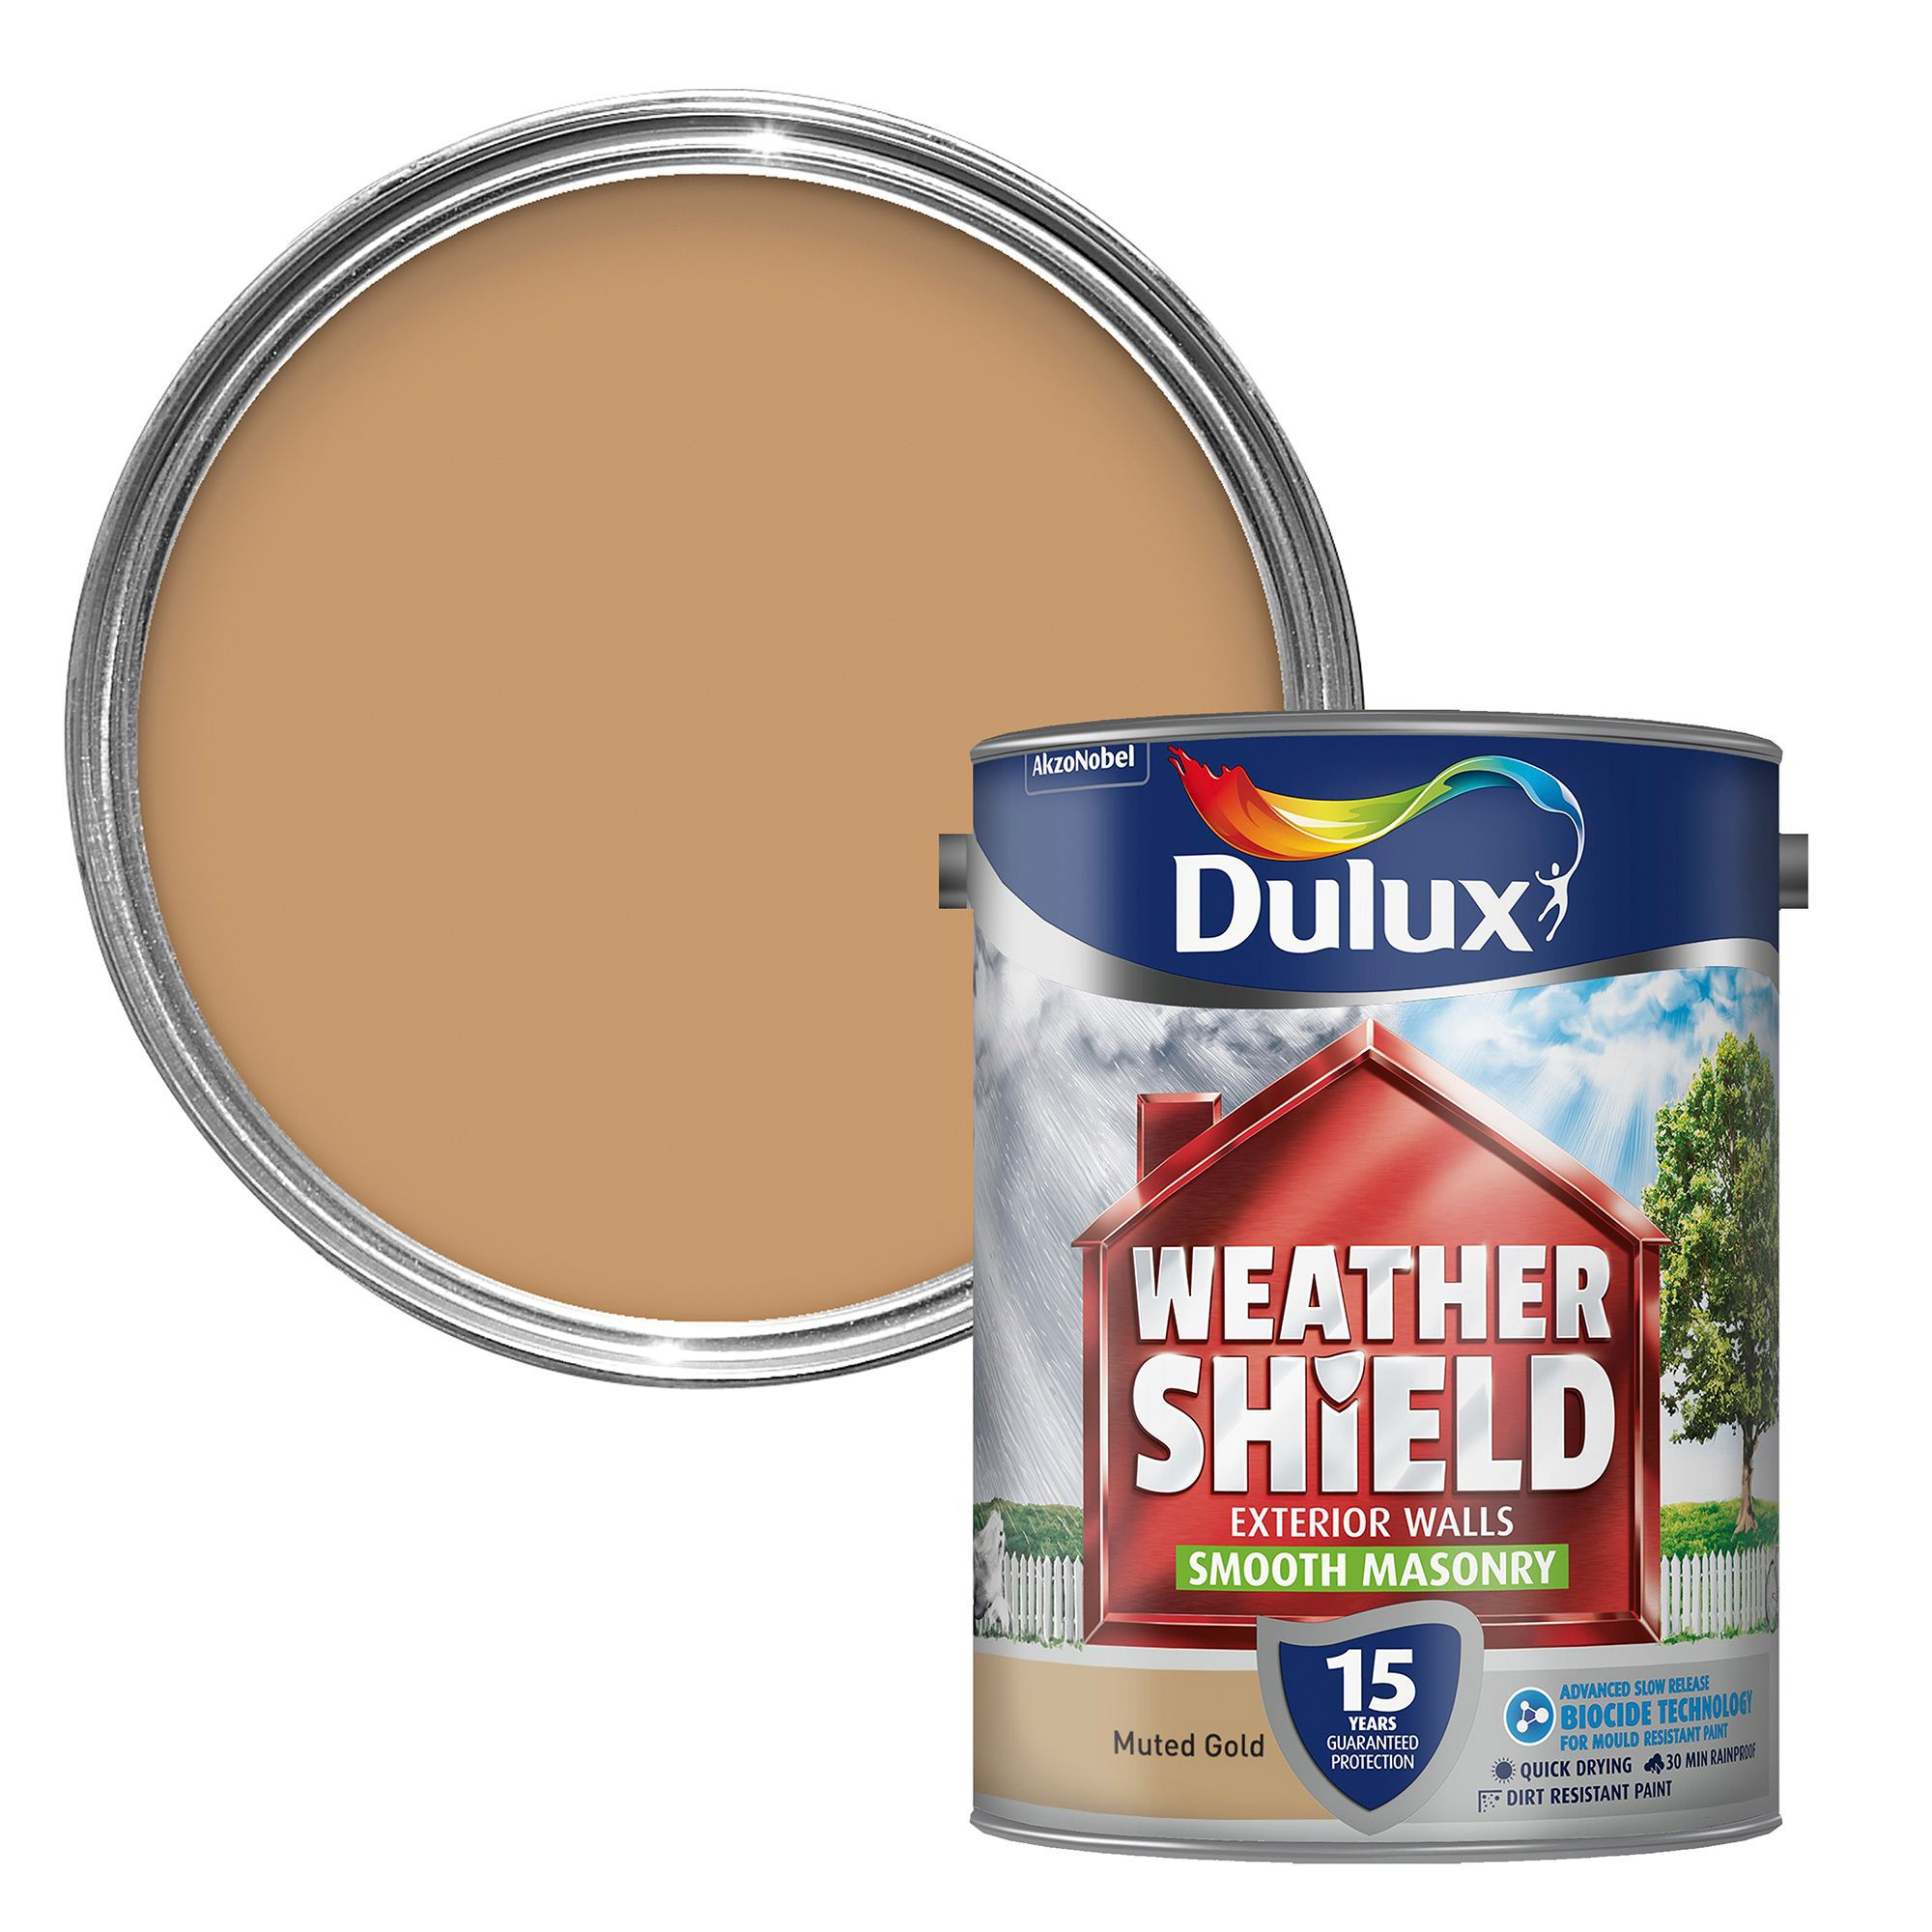 Dulux weathershield muted gold smooth masonry paint 5l - Weathershield exterior paint system ...